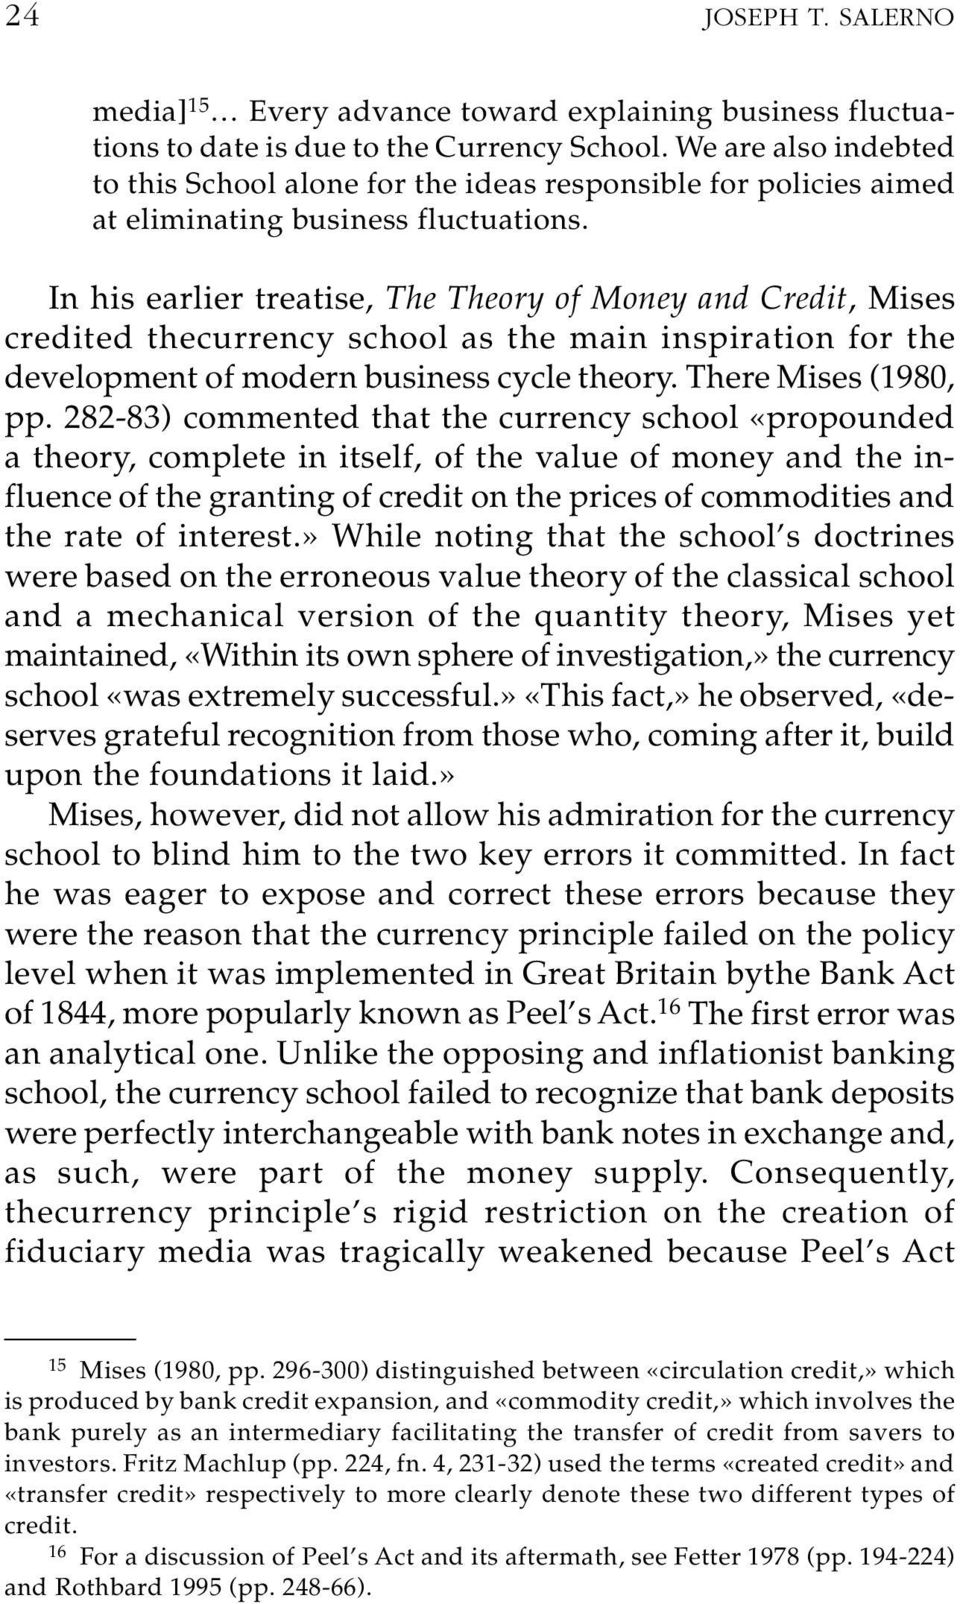 In his earlier treatise, The Theory of Money and Credit, Mises credited thecurrency school as the main inspiration for the development of modern business cycle theory. There Mises (1980, pp.